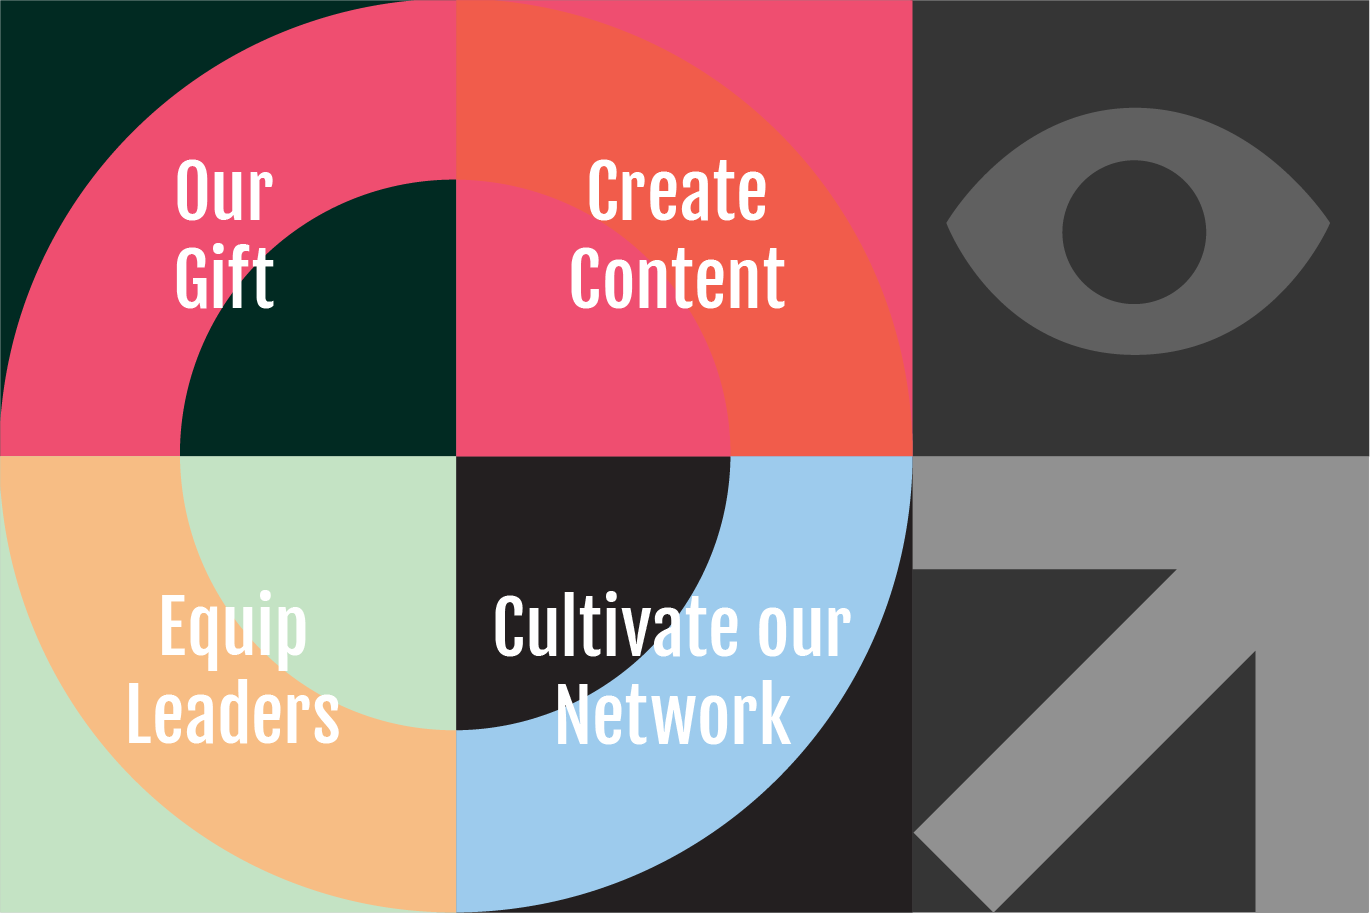 Cultivate Network